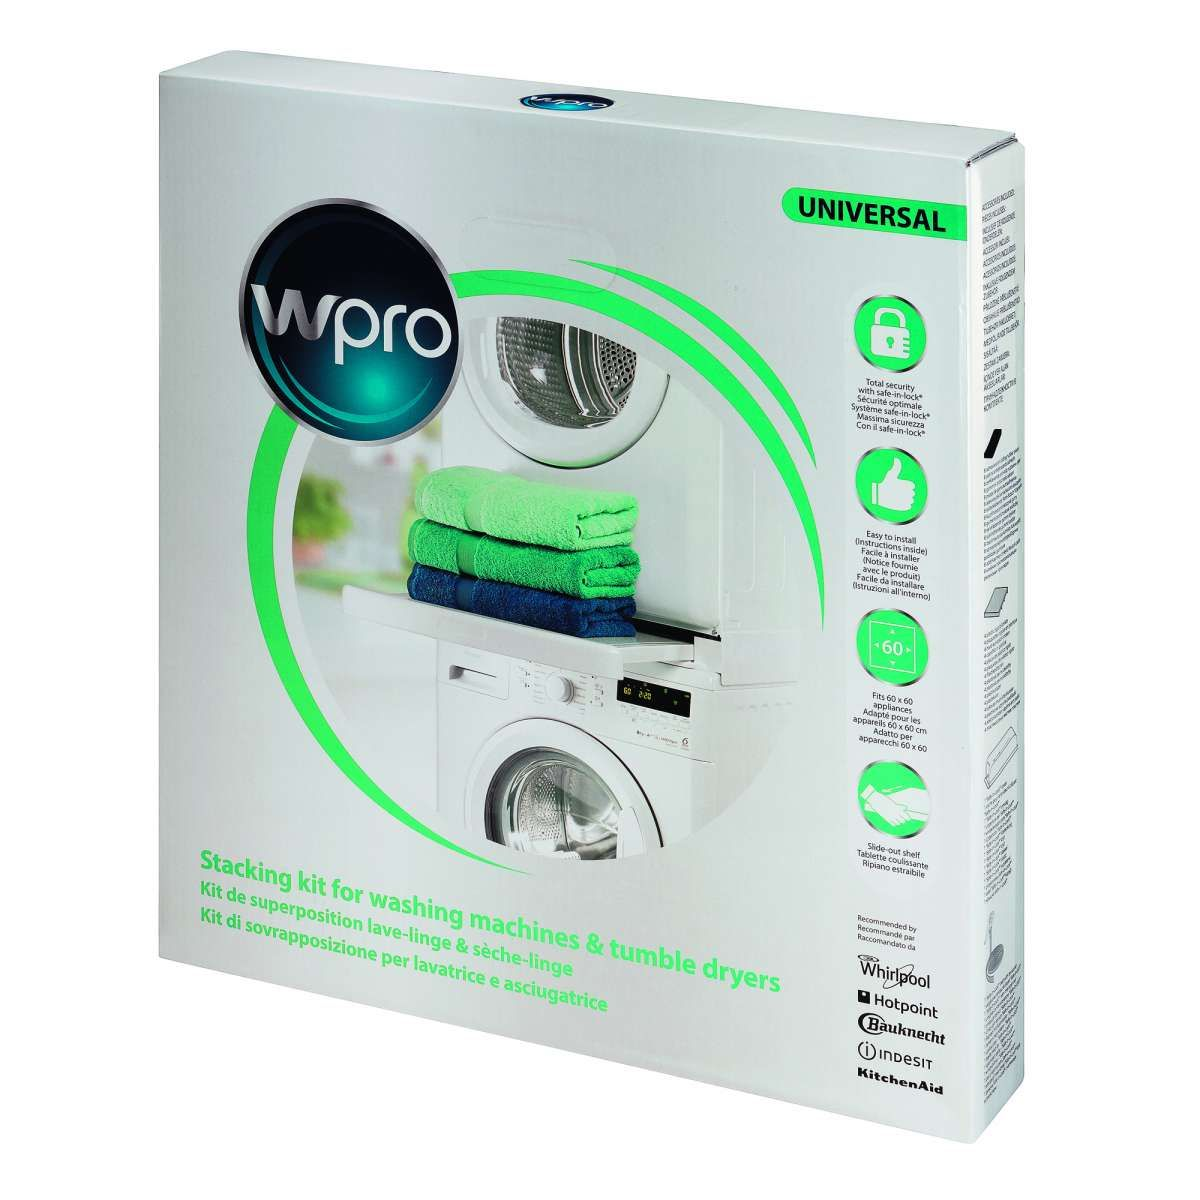 If You Are Short On Space Then Stack Your Tumble Dryer On Top Of Your Washing Machine With The Wpro Stacking Kit Y In 2020 Washing Machine Tumble Dryers Tumble Dryer